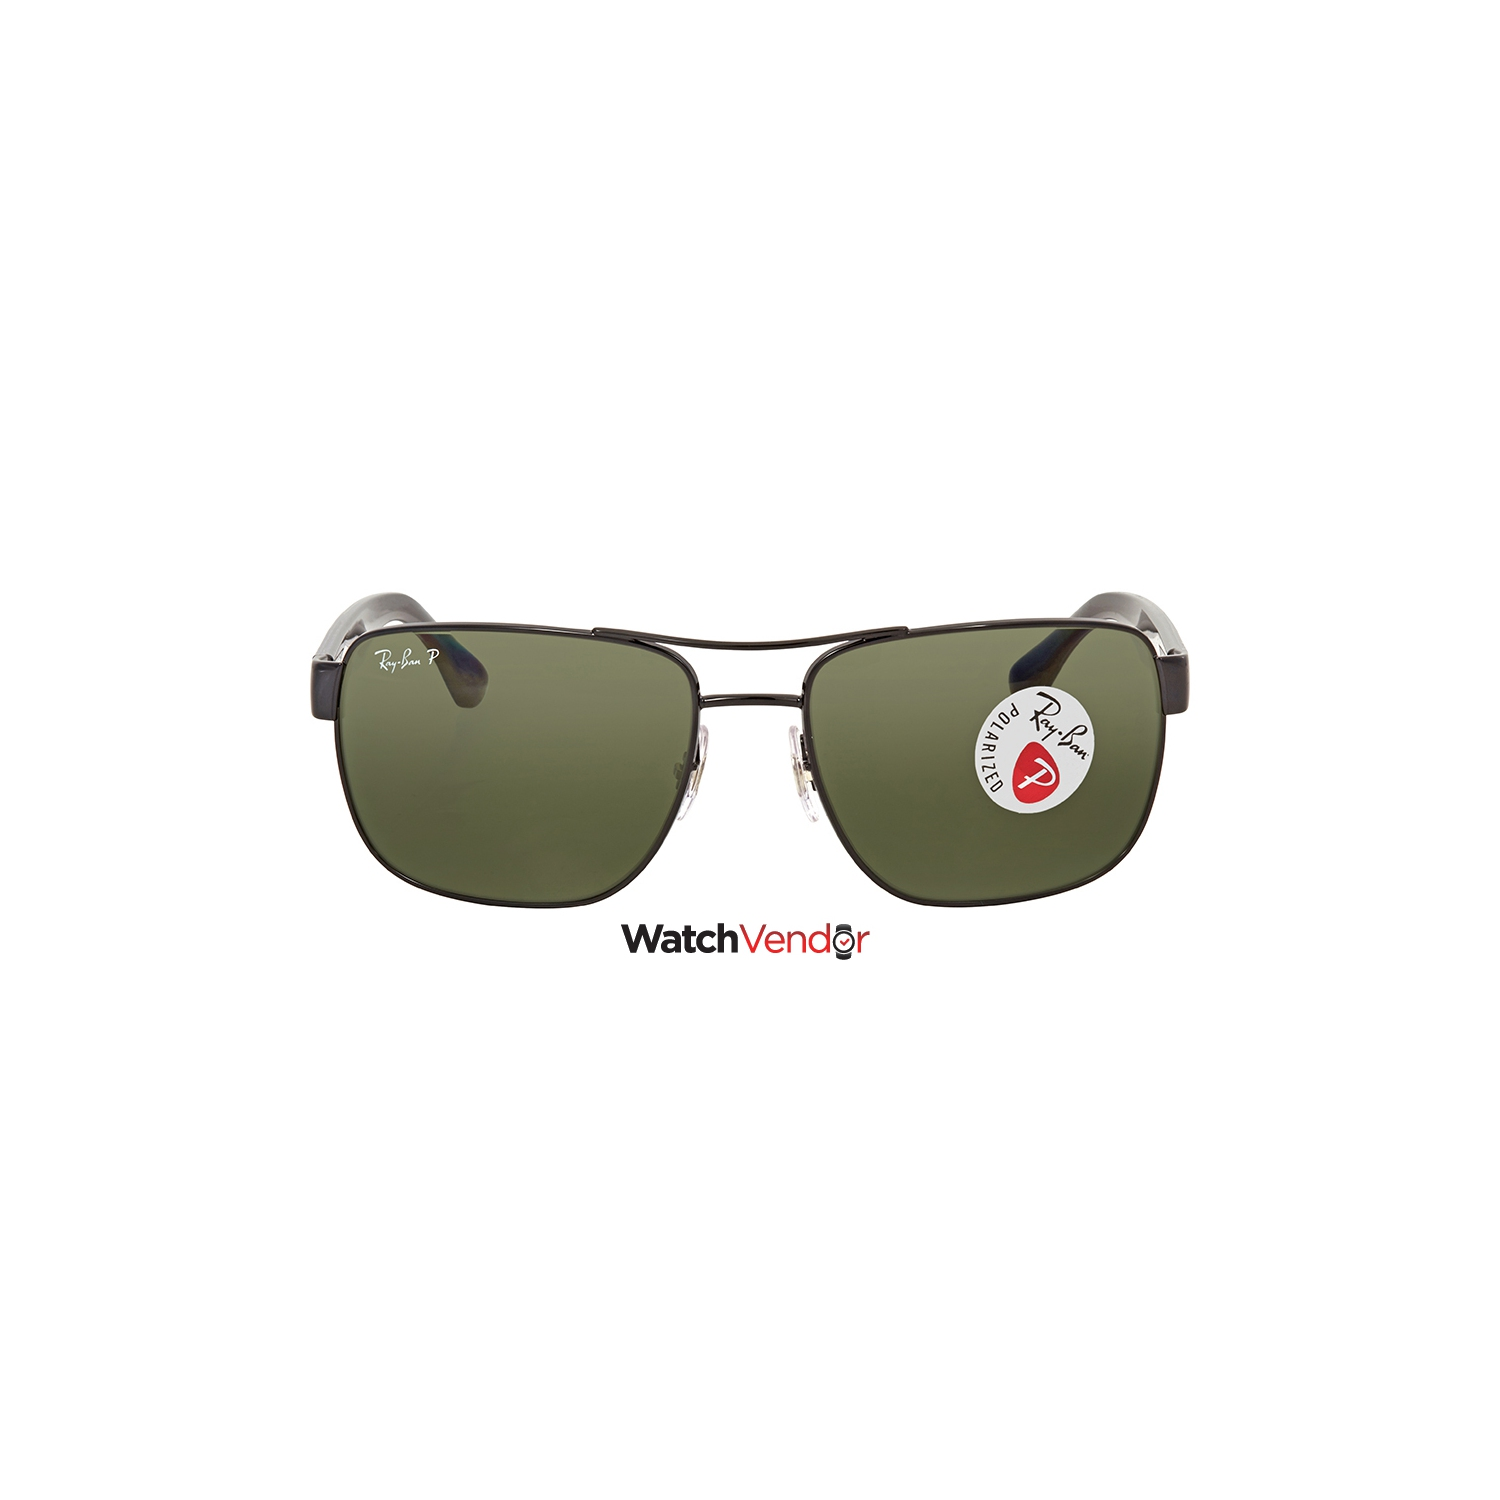 4ec1d43ba10f9 Ray Ban Polarized Green Classic G-15 Square Men s Sunglasses RB3530 002 9A  58 - Online Only